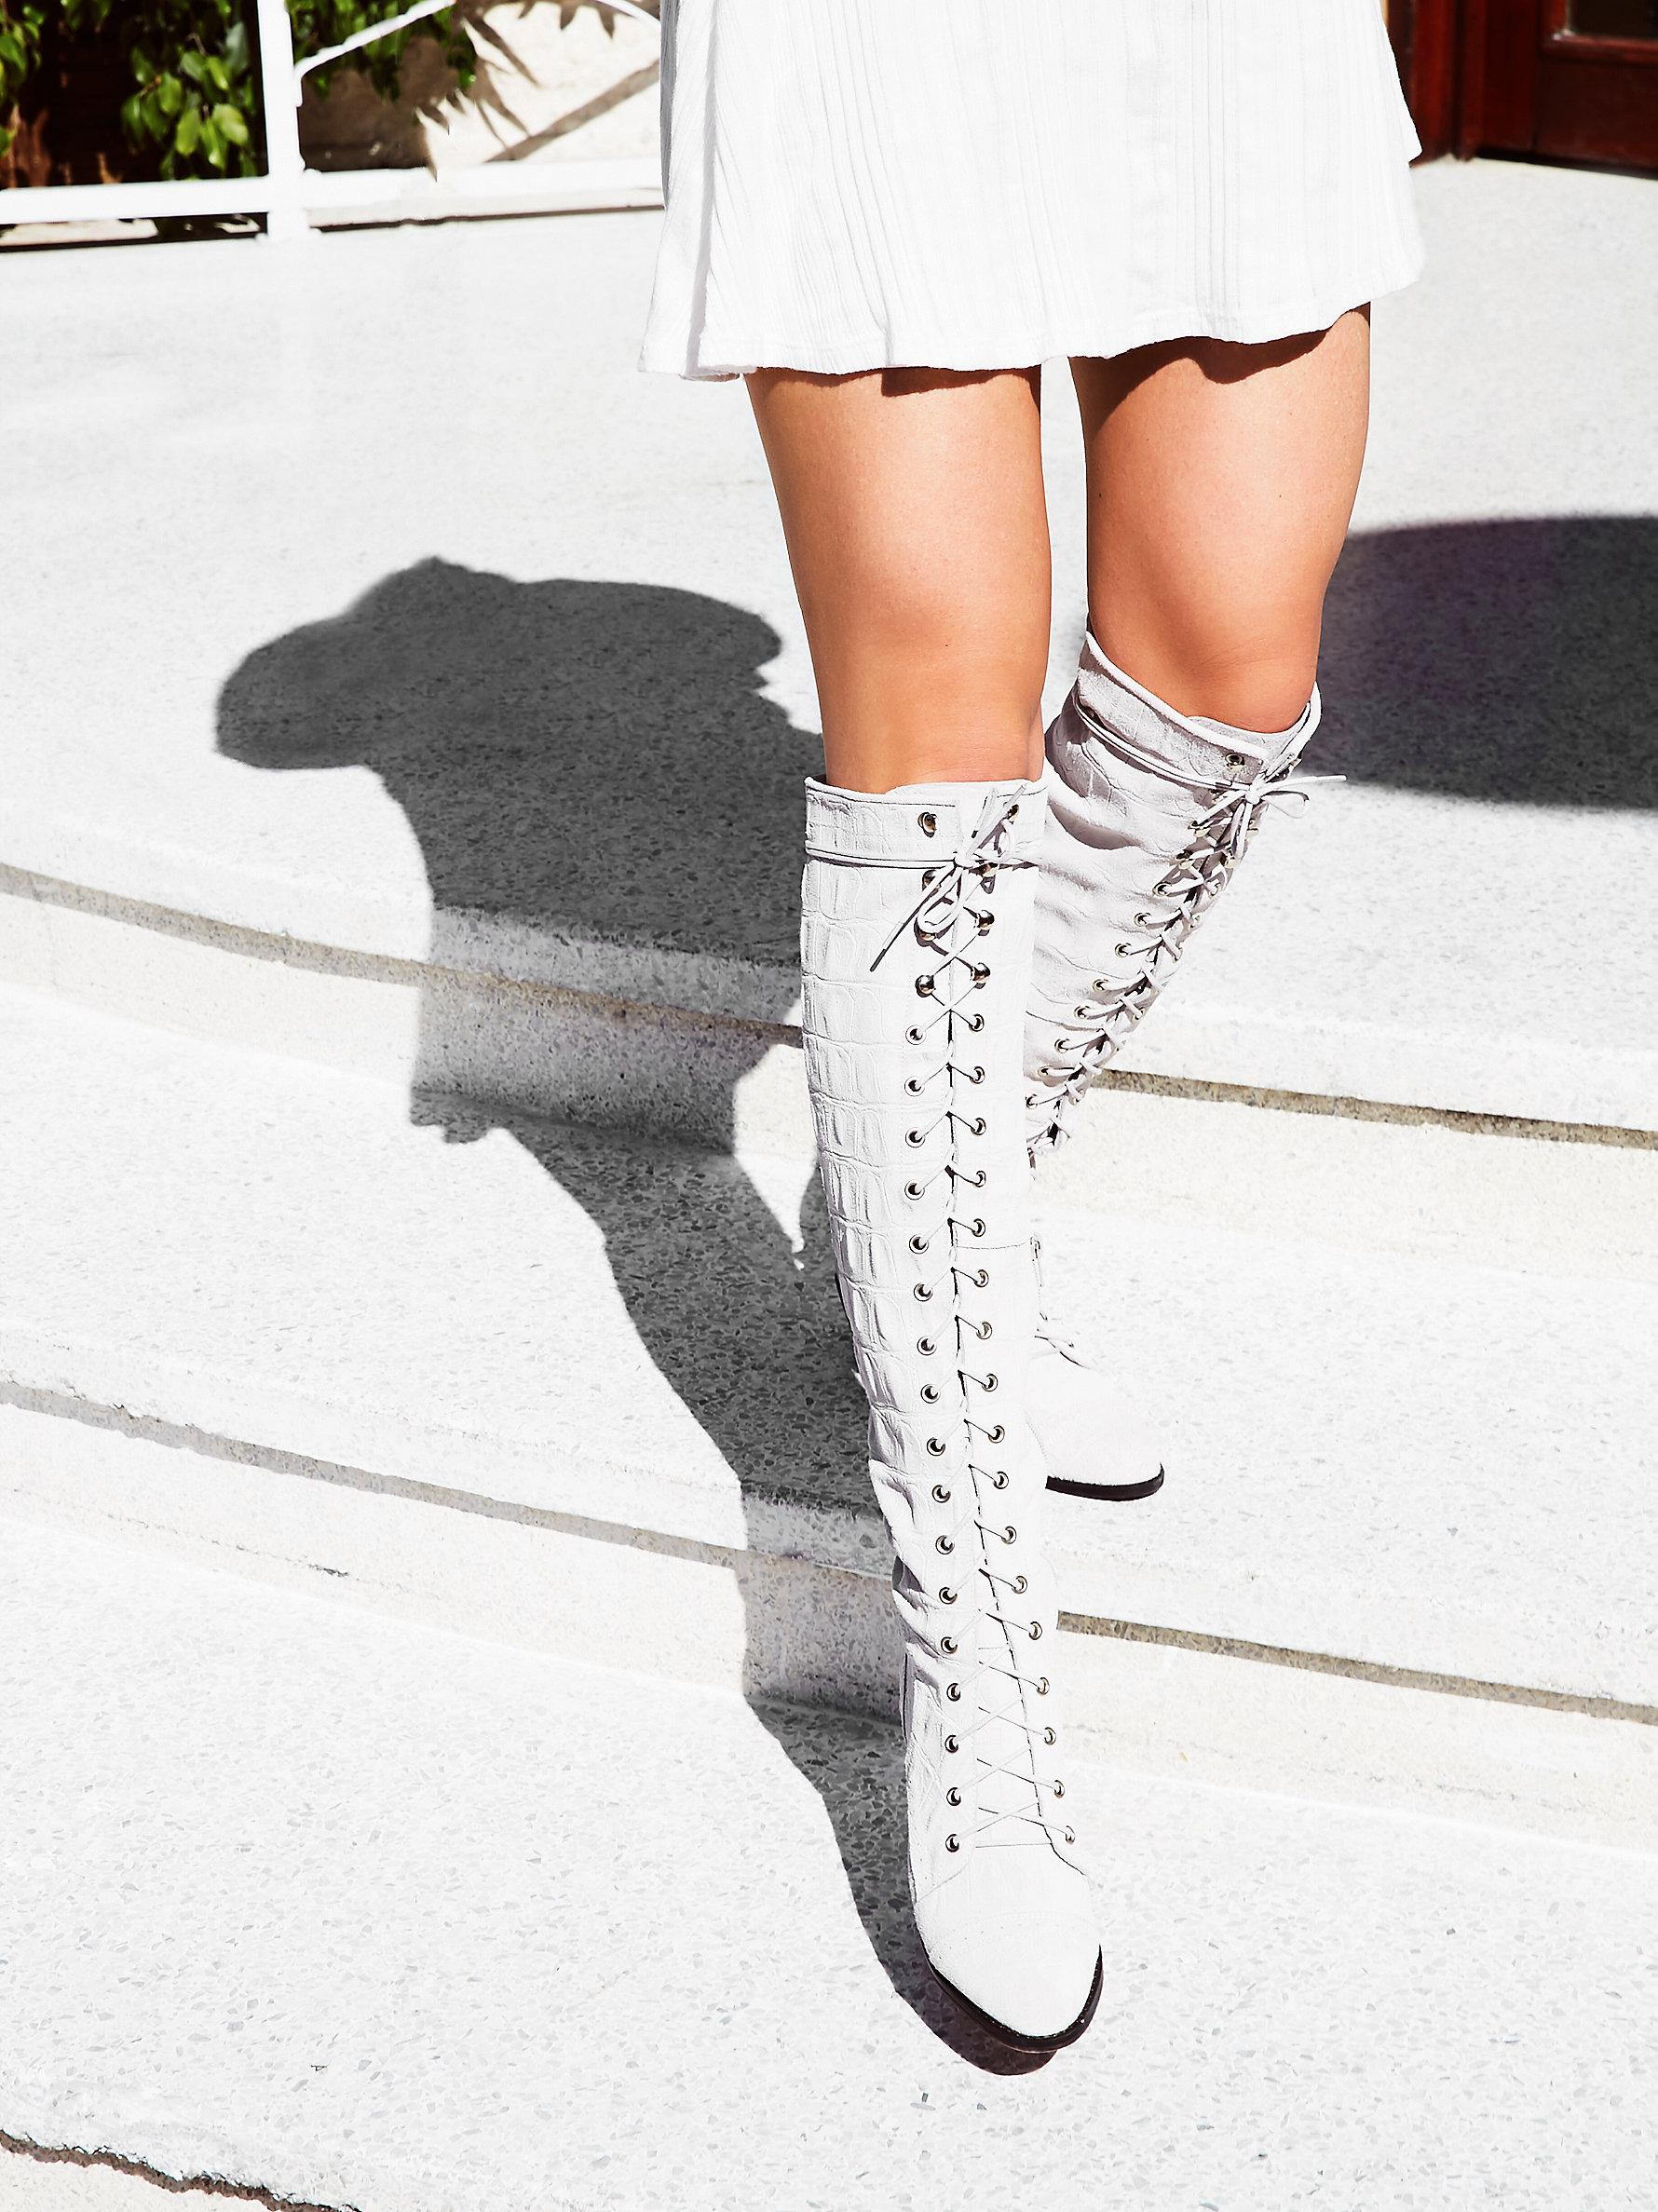 Joe Lace Up Boot in White Croc Suede